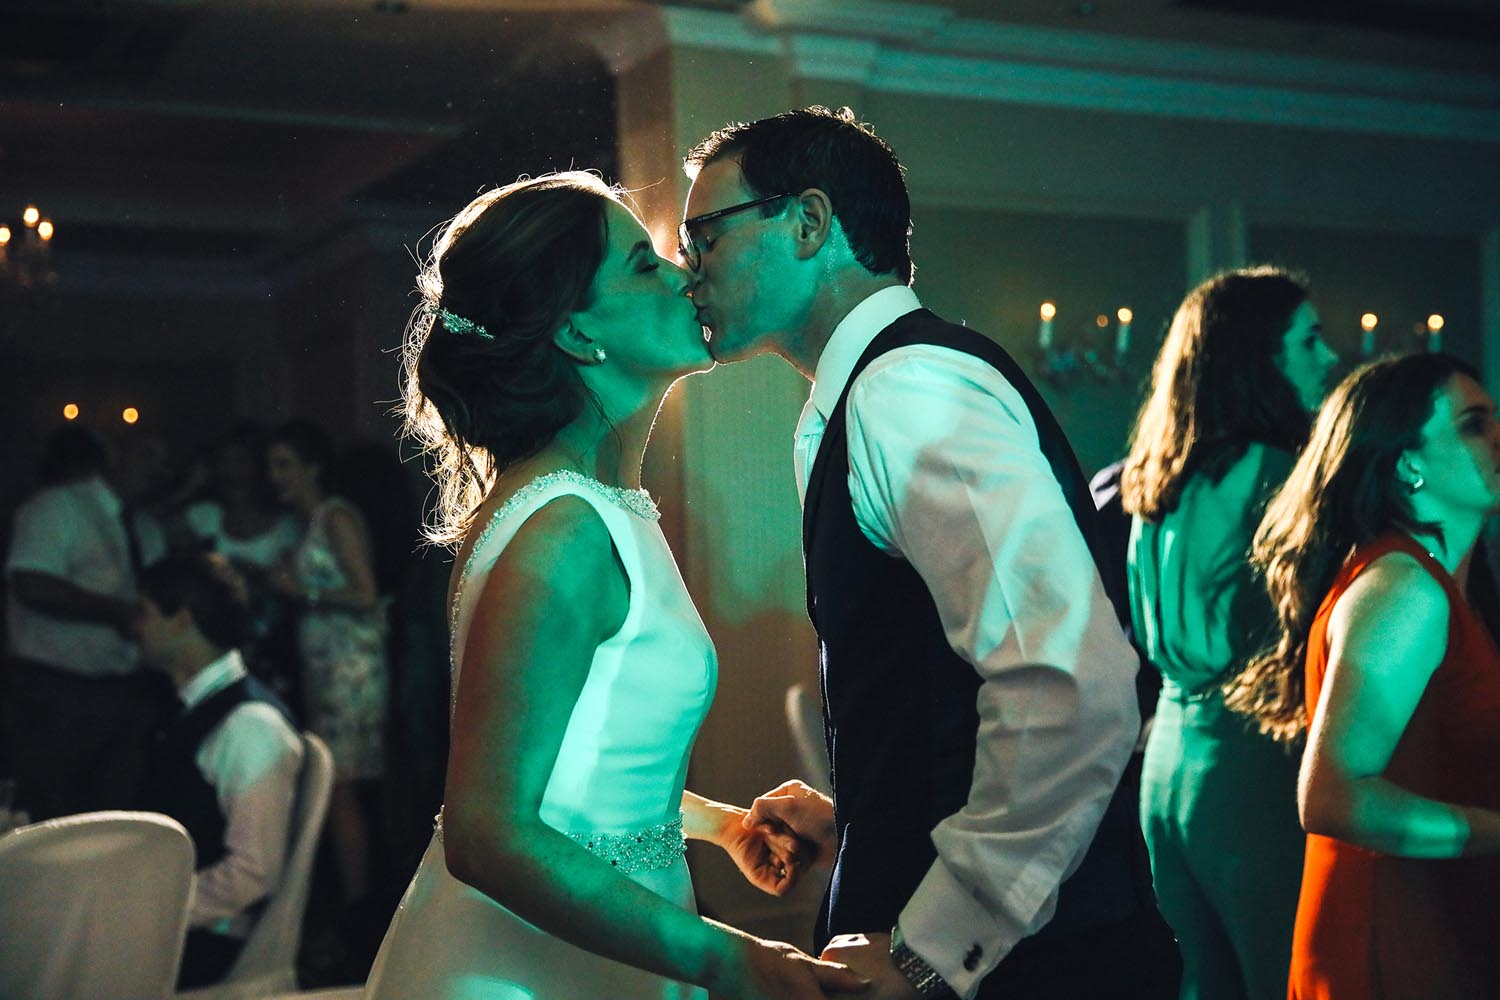 Bride and Groom kiss each other on the dancefloor